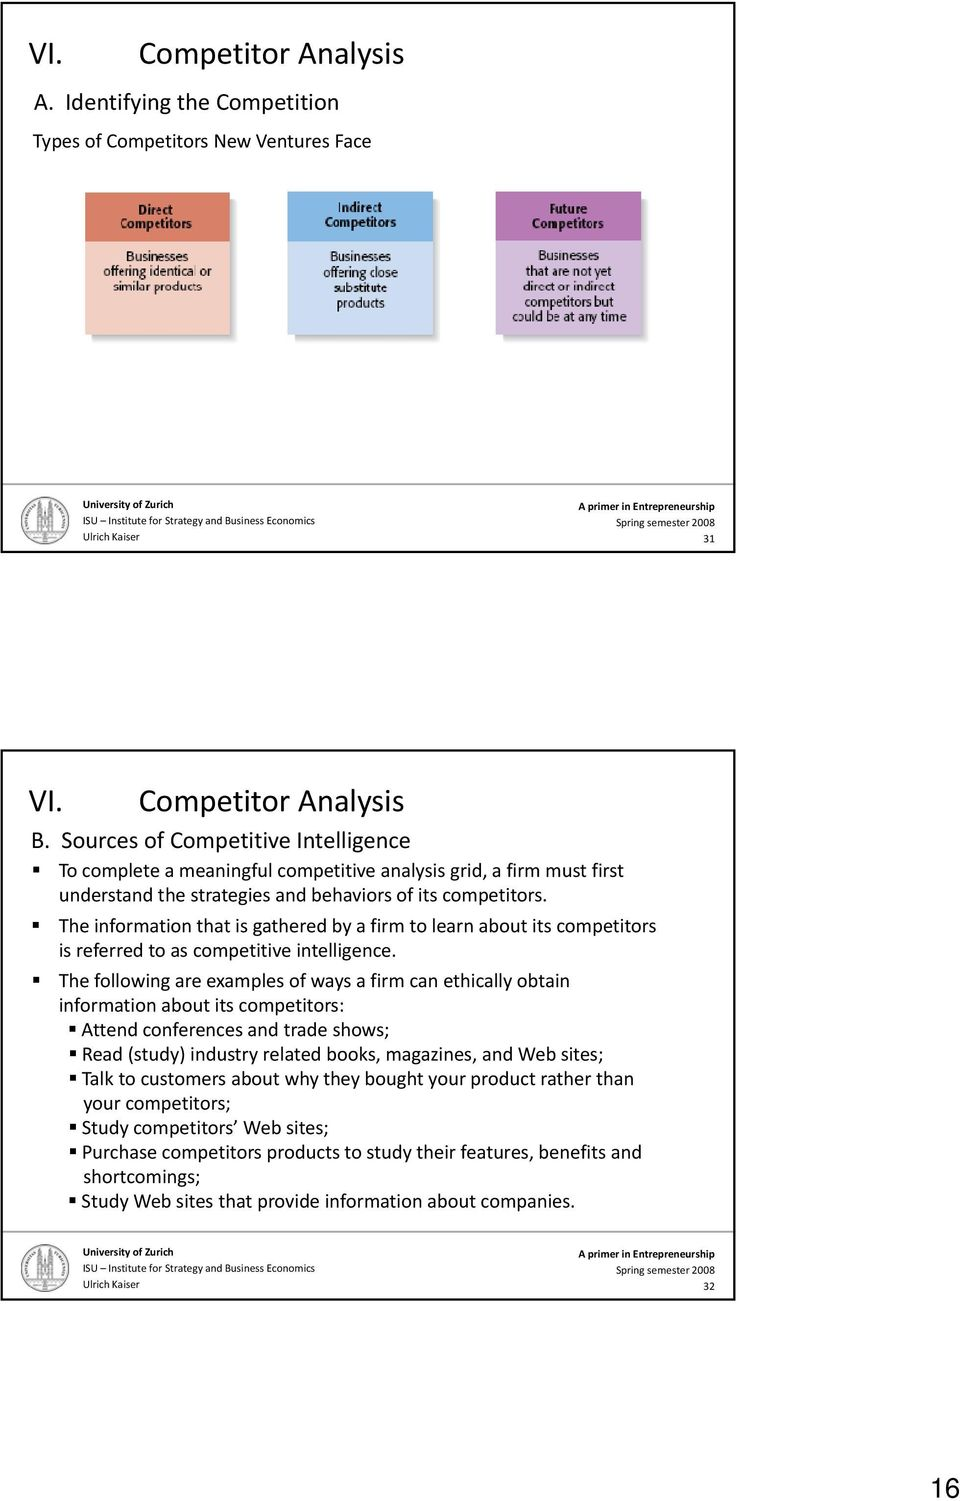 The information that is gathered by a firm to learn about its competitors is referred to as competitive intelligence.